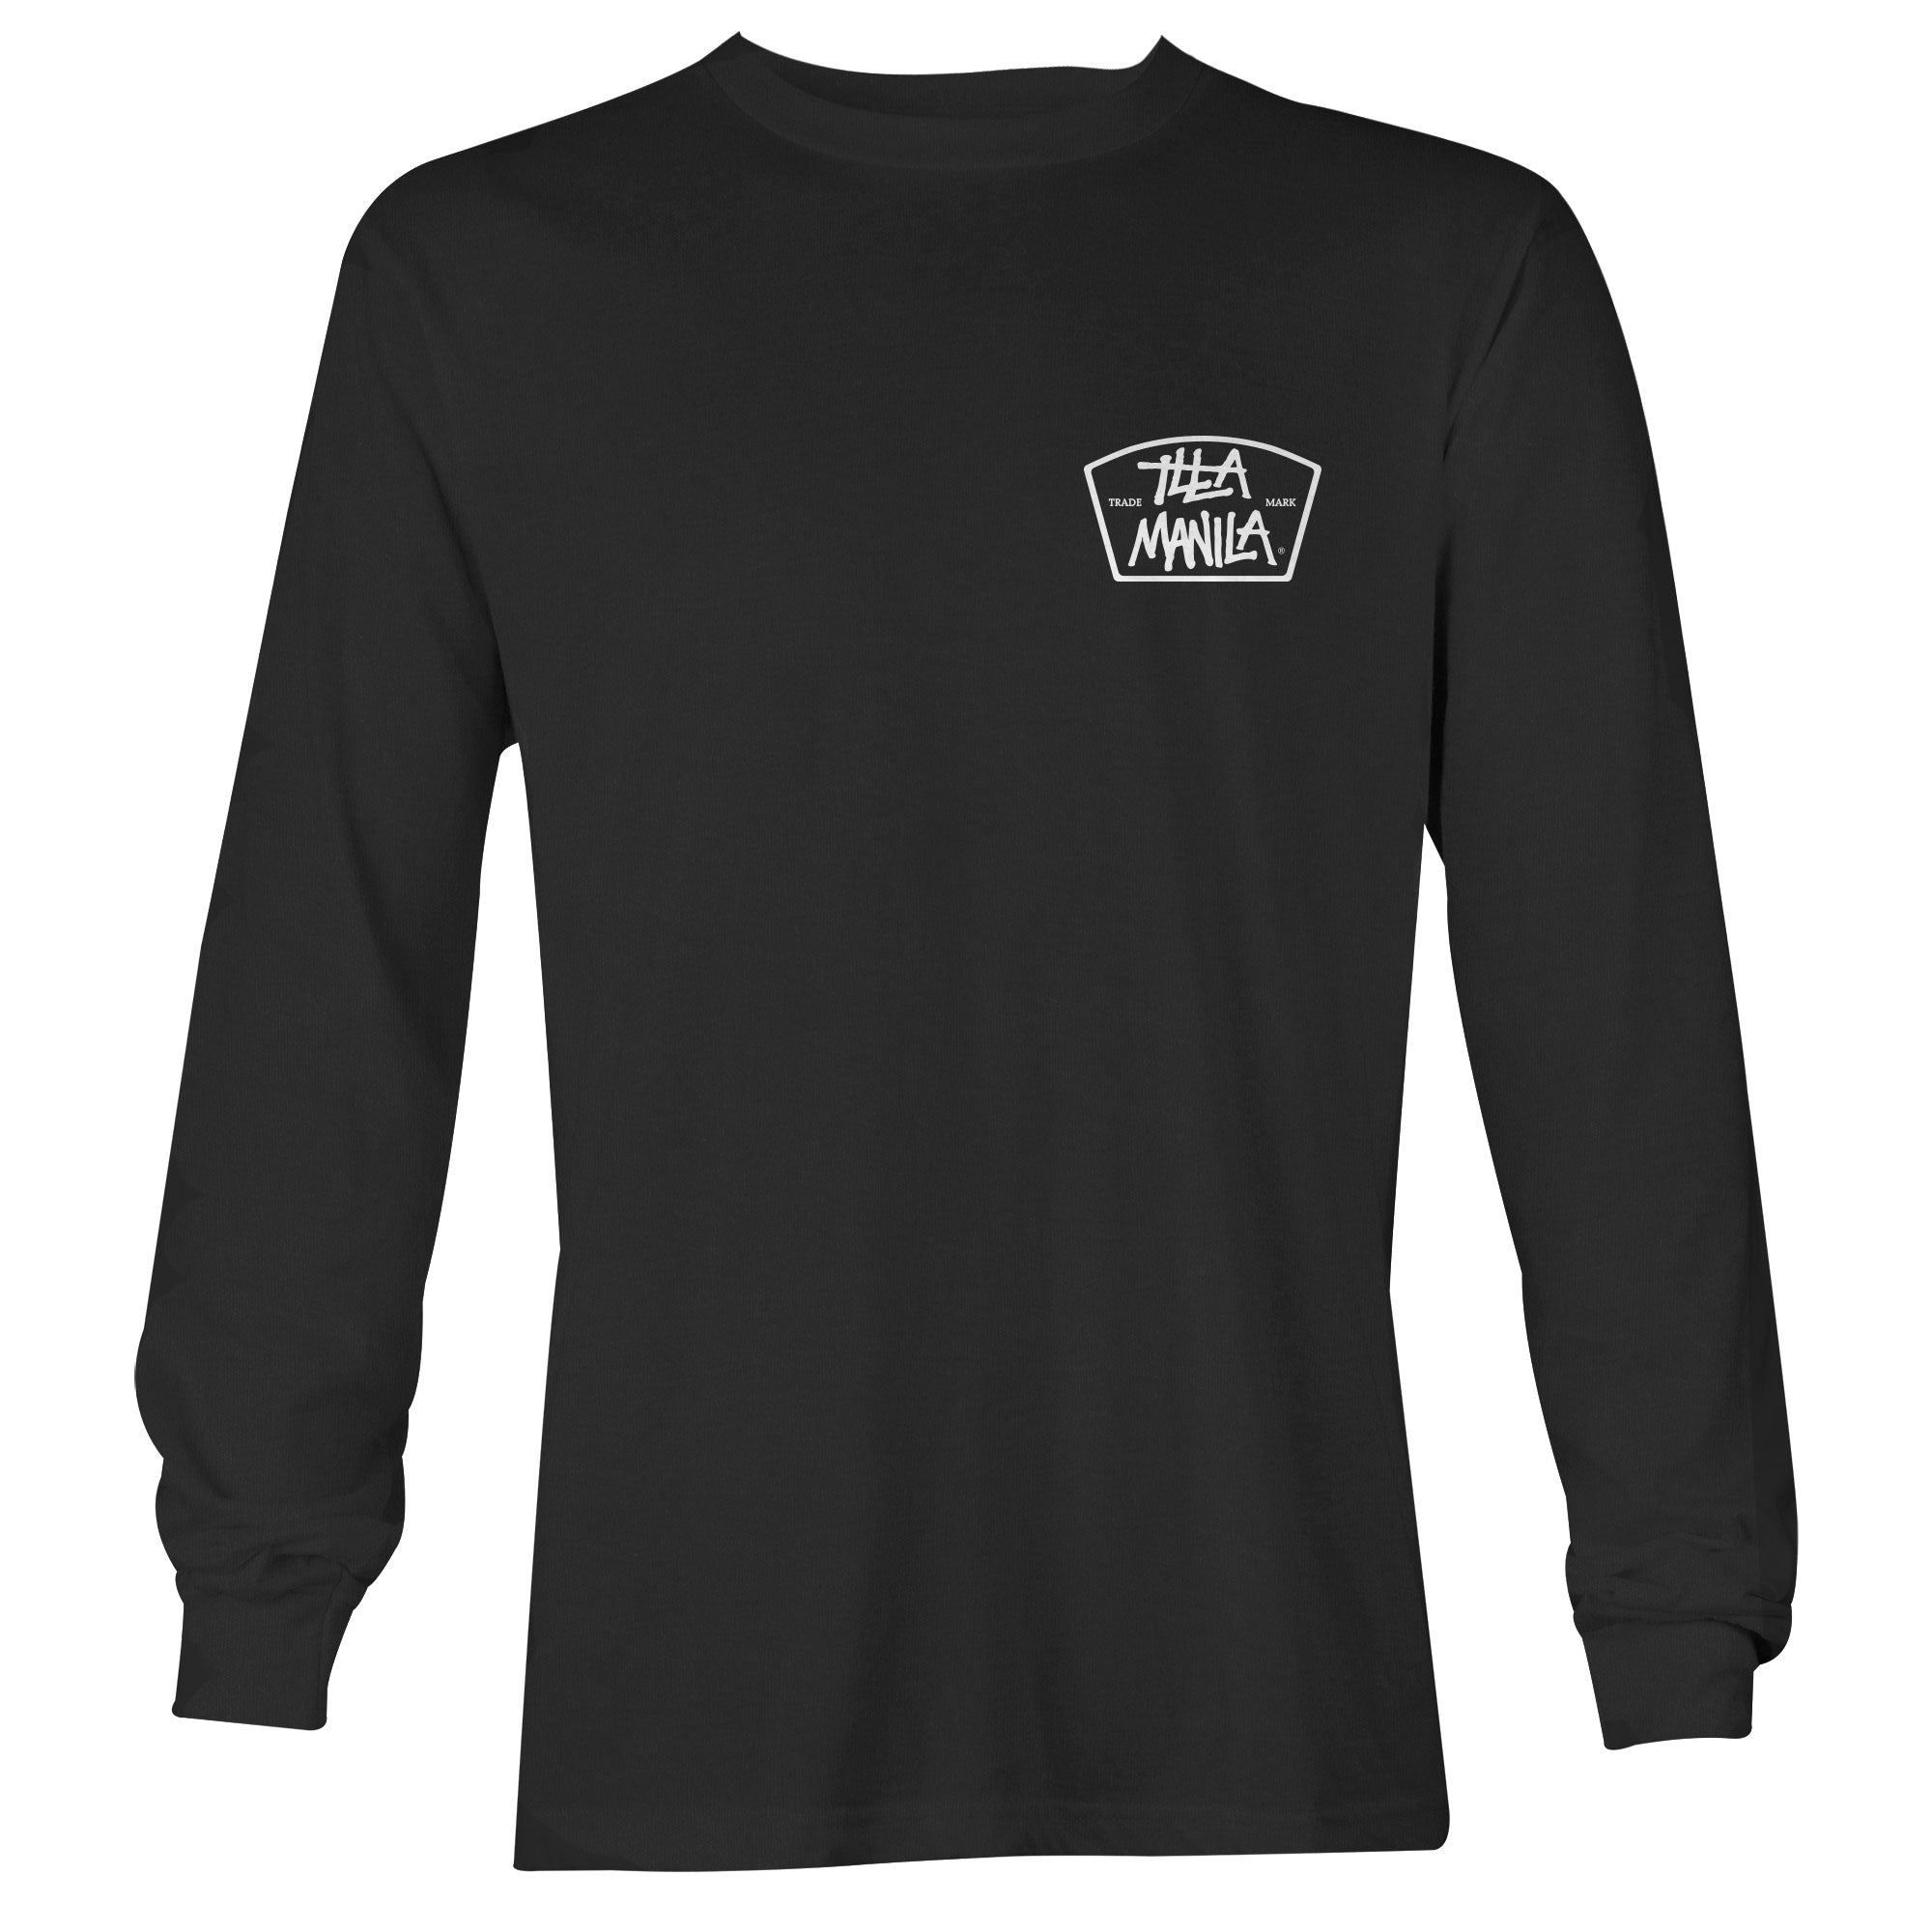 Trade Mark Long Sleeve T-shirt - Black